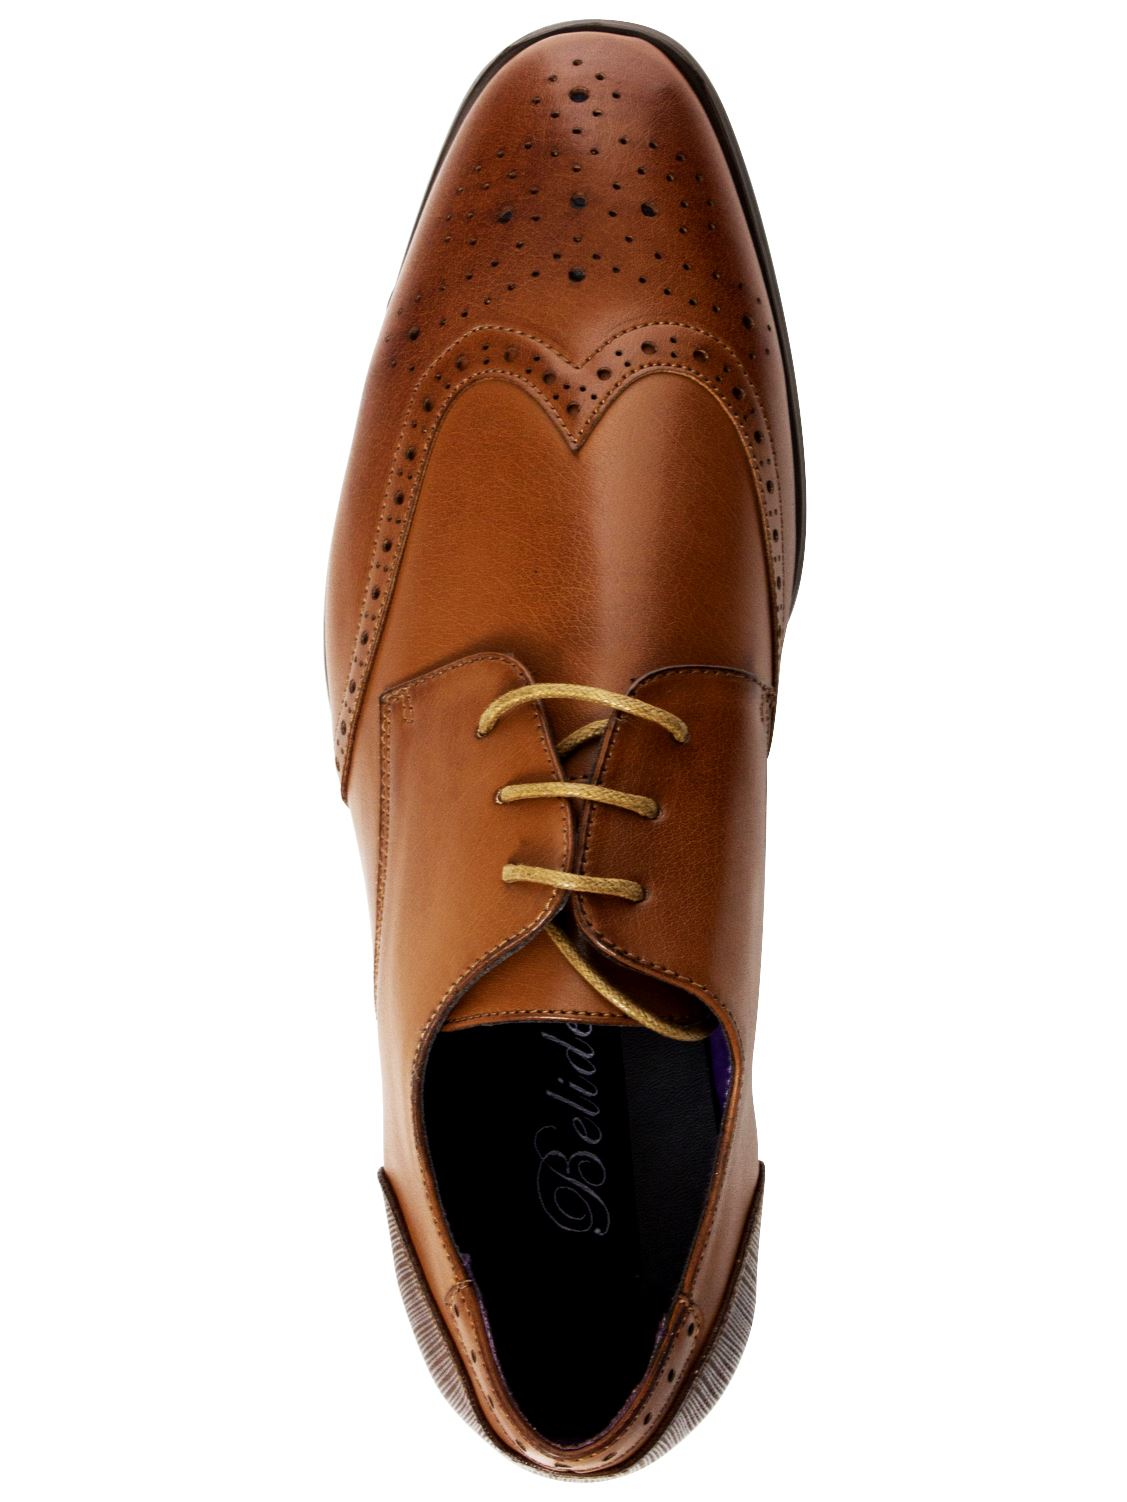 Mens-Faux-Leather-Shoes-Smart-Formal-Wedding-Office-Lace-Up-Designer-Brogues thumbnail 25